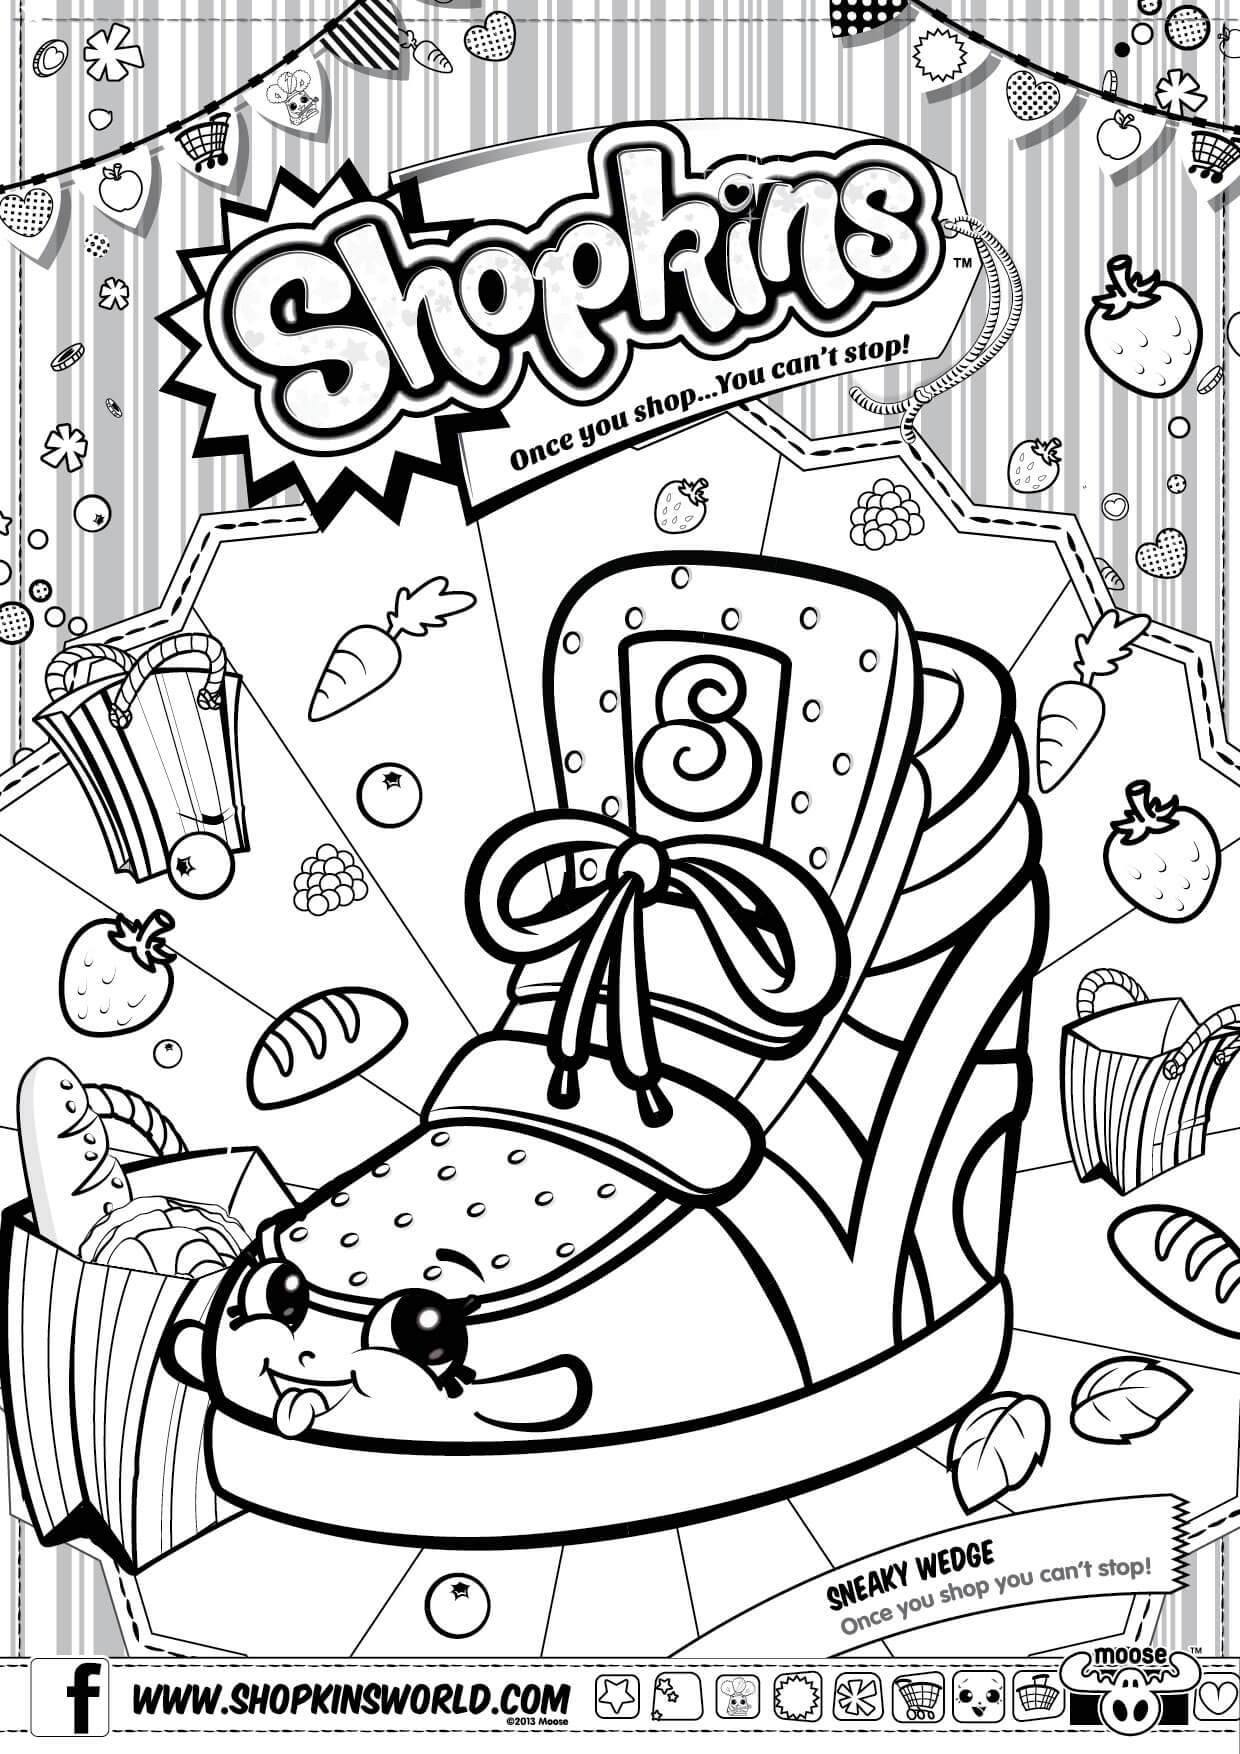 Shopkins Coloring Pages 1 Diy Craft Ideas Gardening